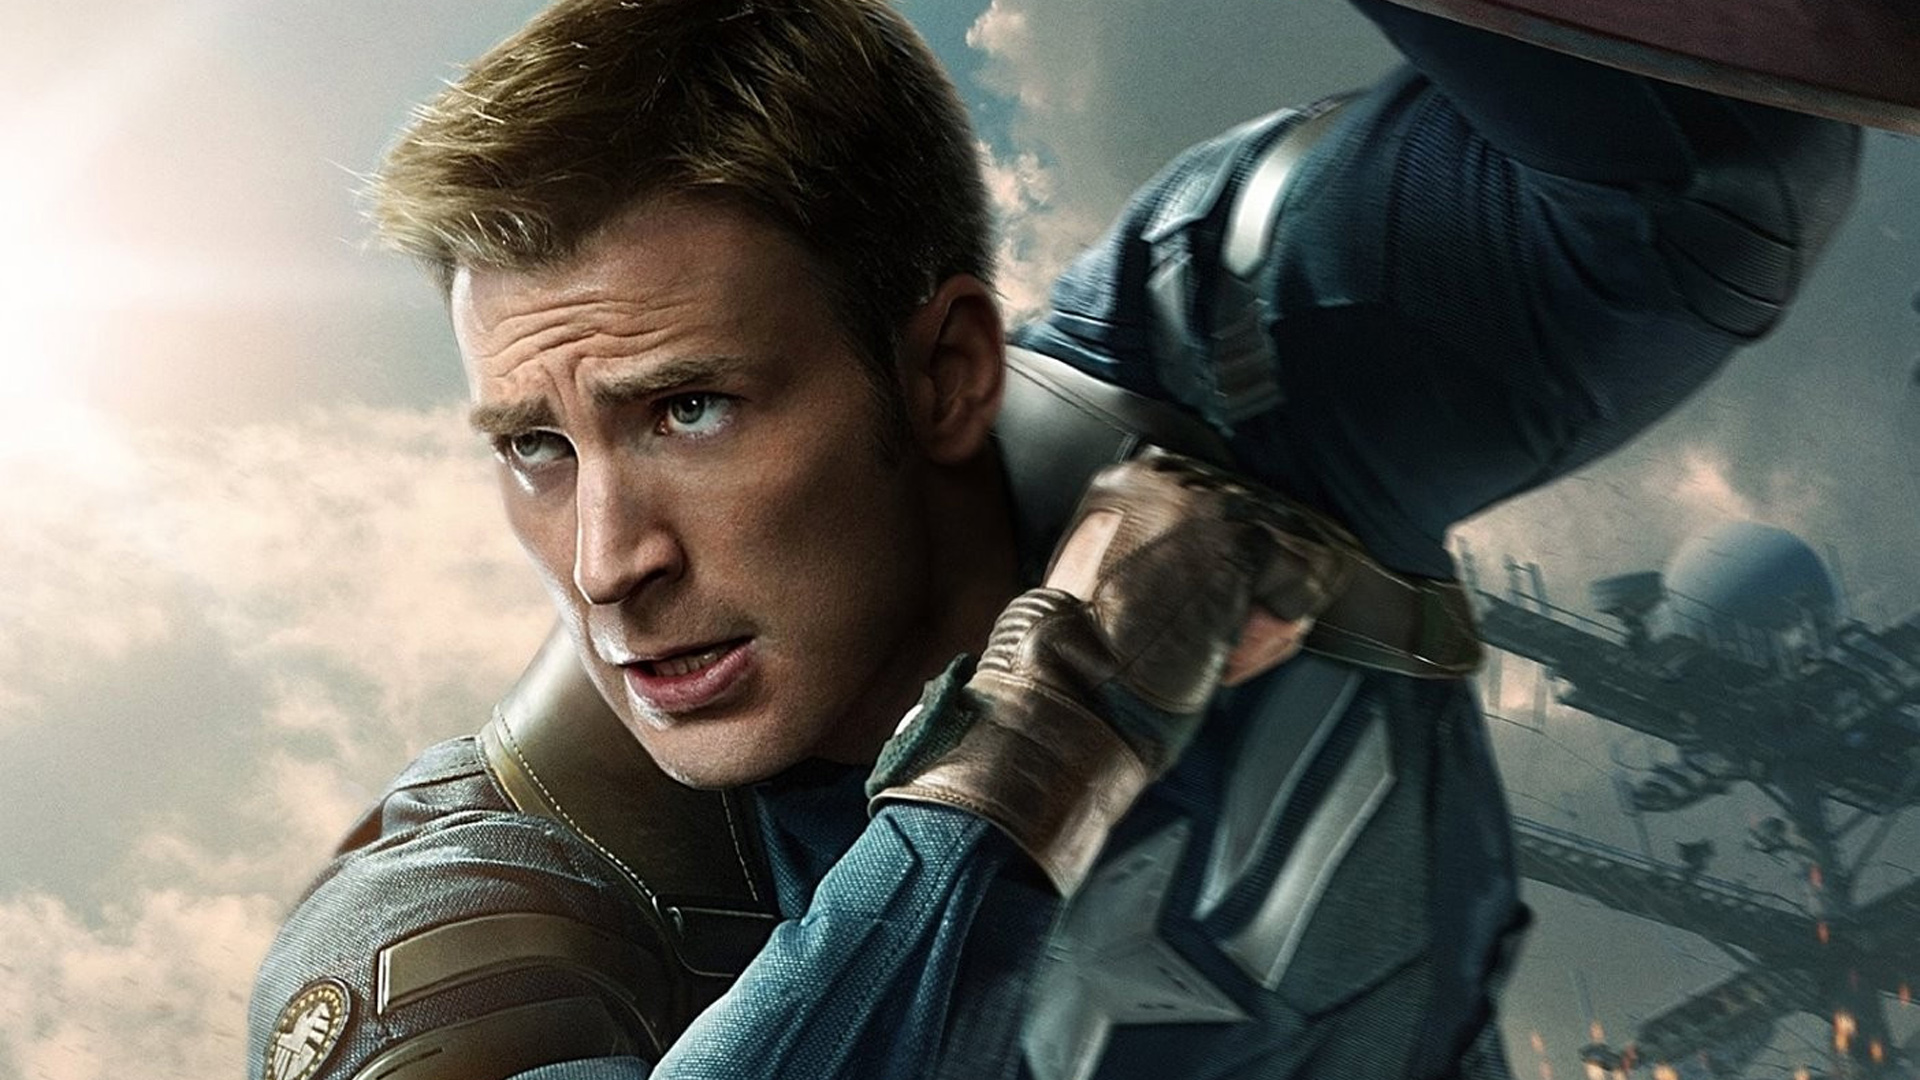 'Captain America' Blows Up Box Office With Boffo $203 Mil Globally, Scores Record $96 Mil Stateside Bow